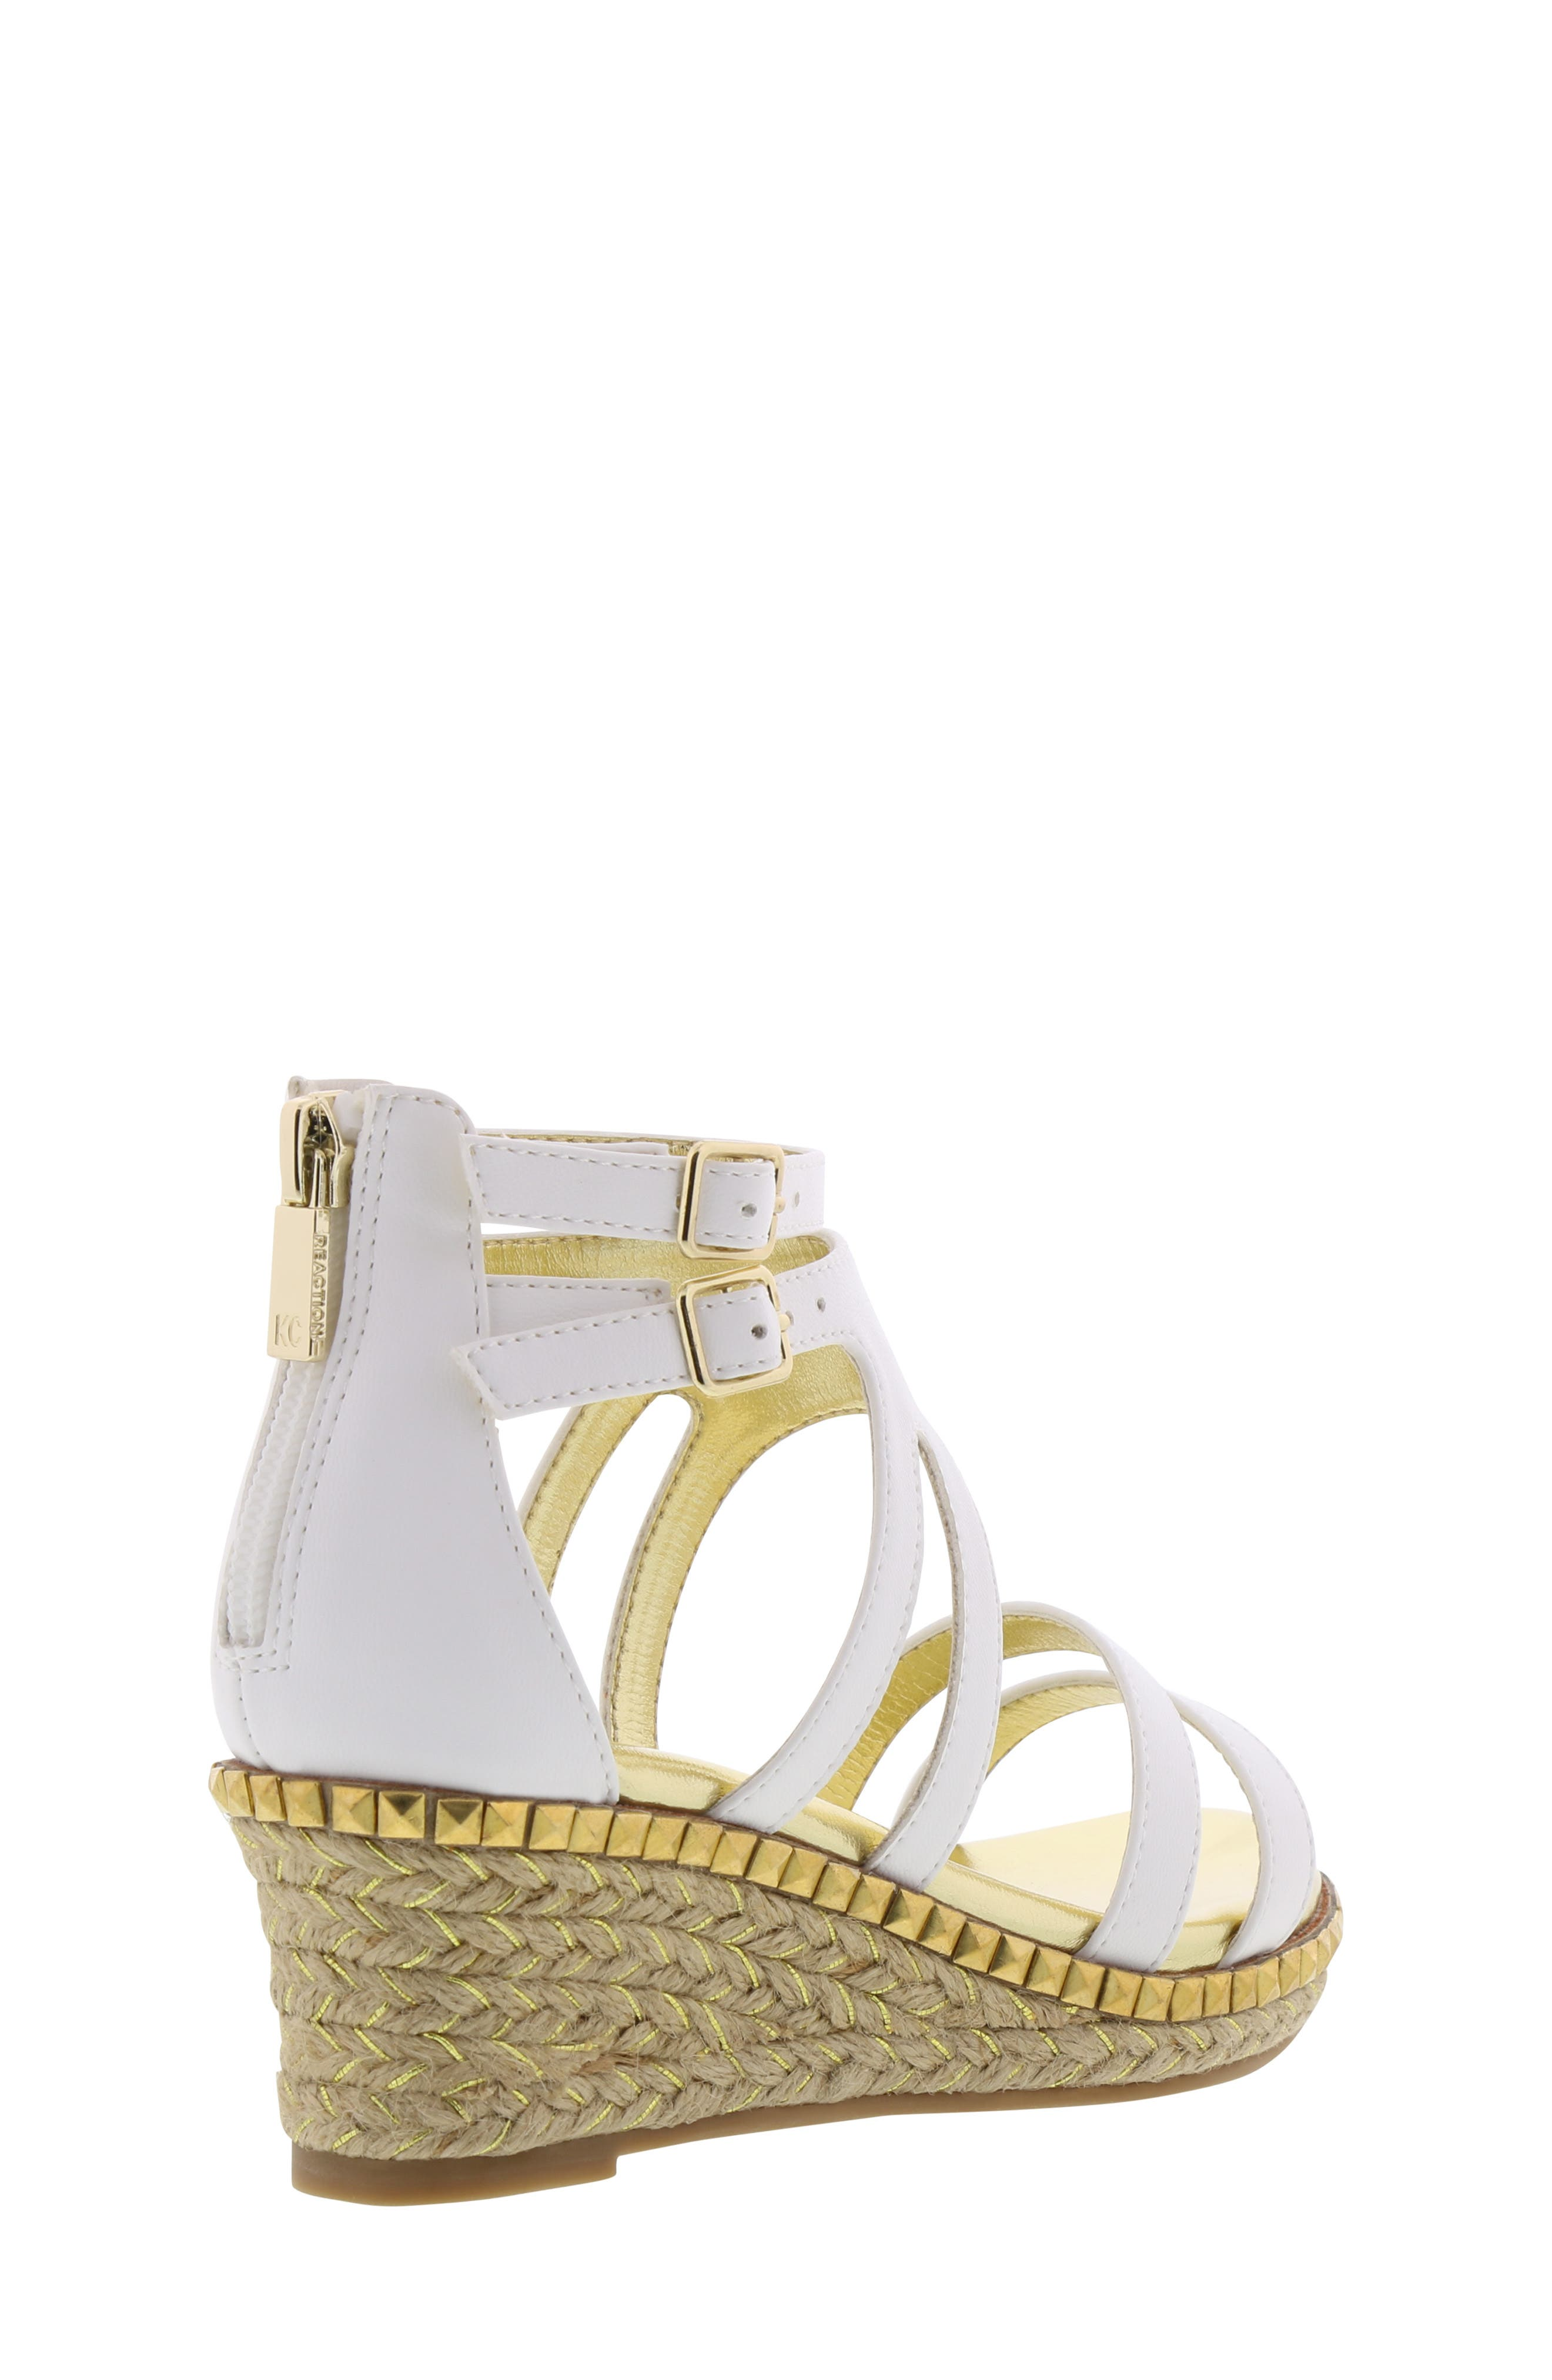 REACTION KENNETH COLE, Reed Splash Wedge Sandal, Alternate thumbnail 2, color, WHITE